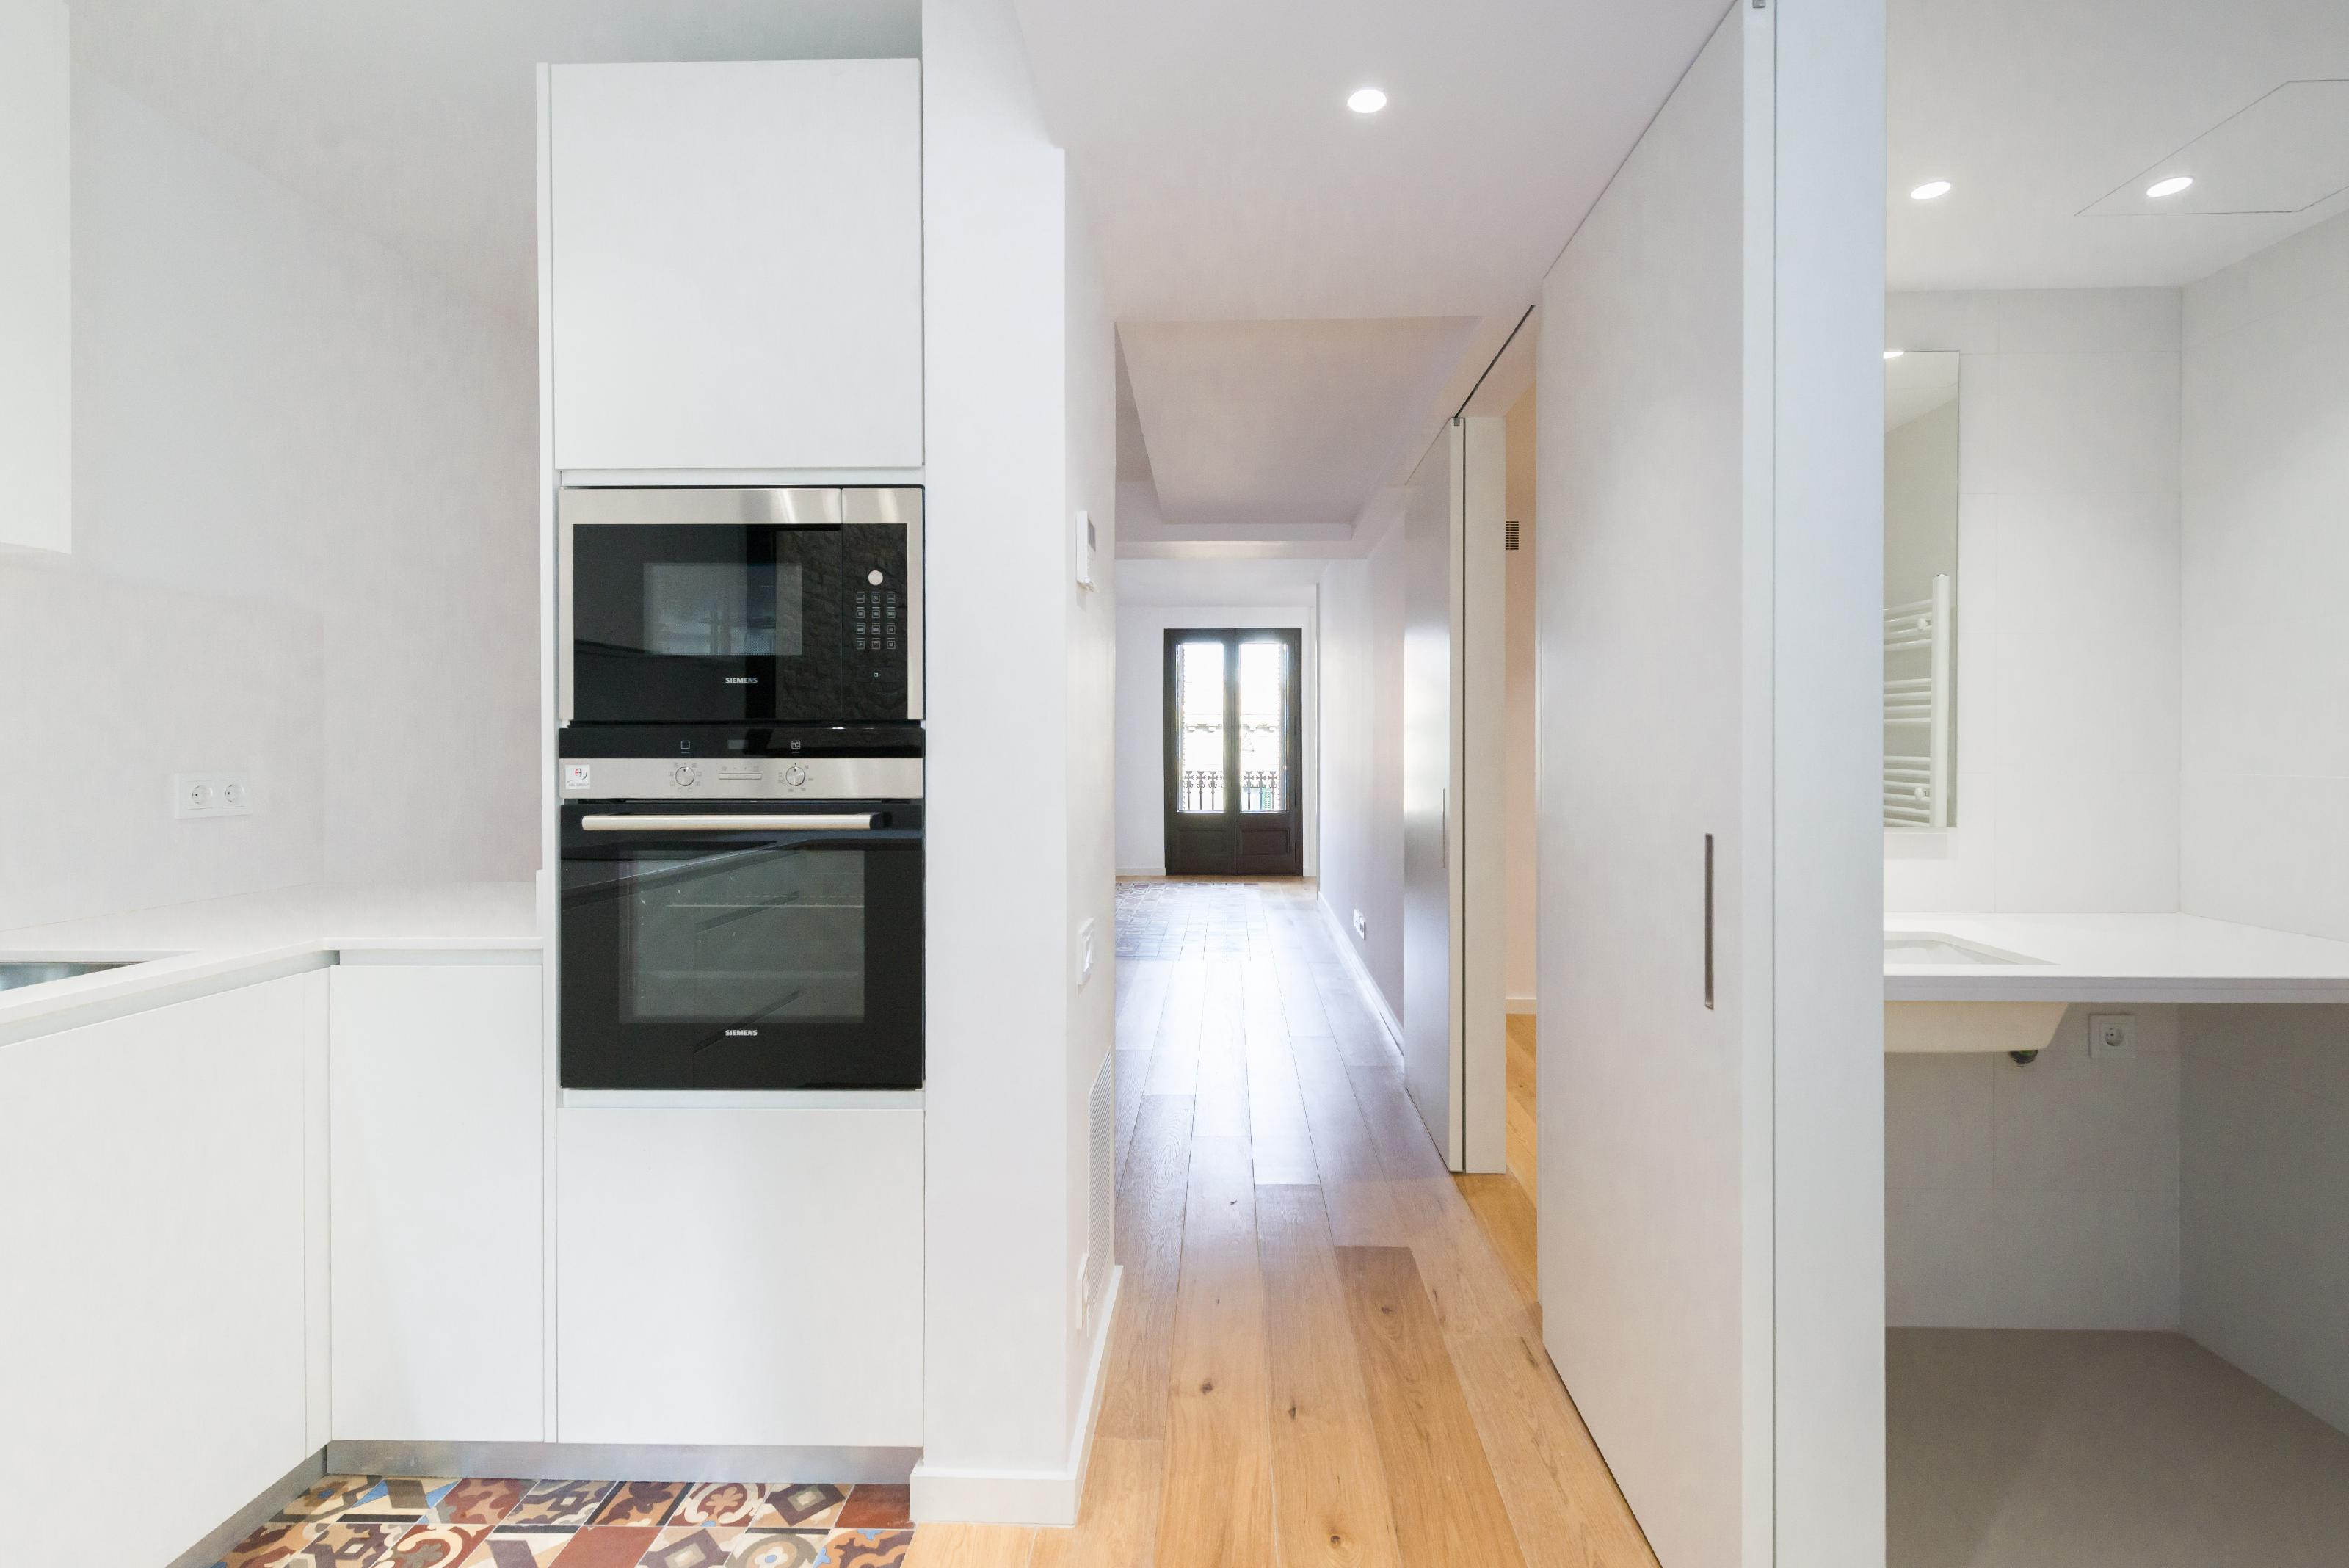 236358 Flat for sale in Eixample, Old Left Eixample 18